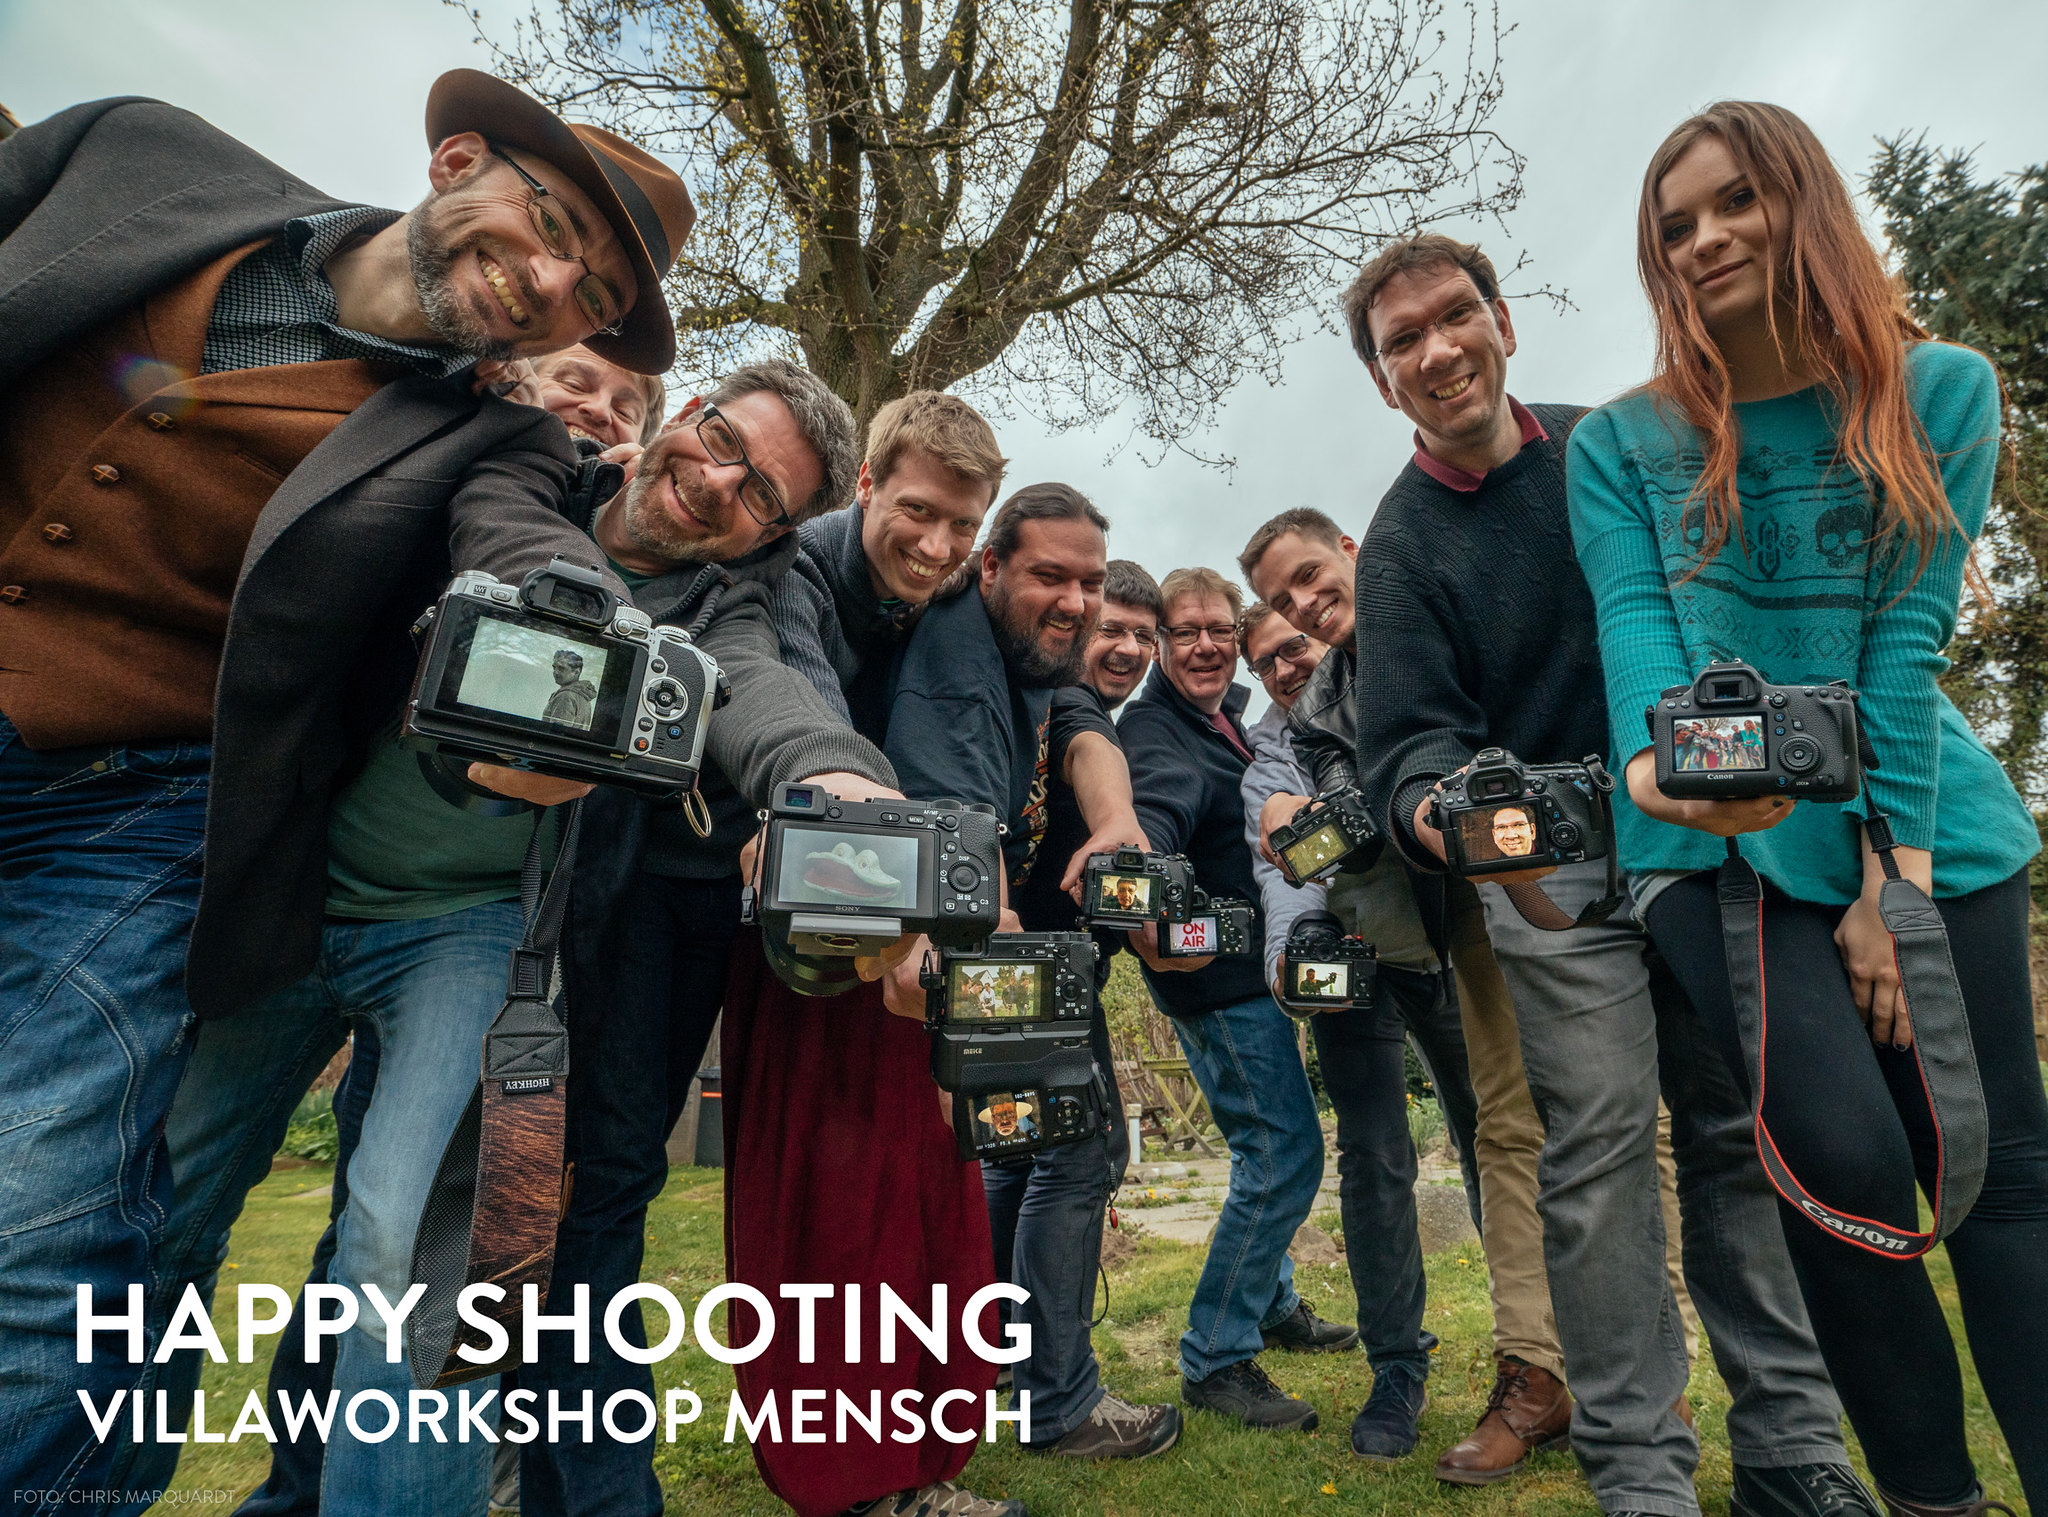 Villaworkshop Mensch 2017 - Happy Shooting - Gruppenbild